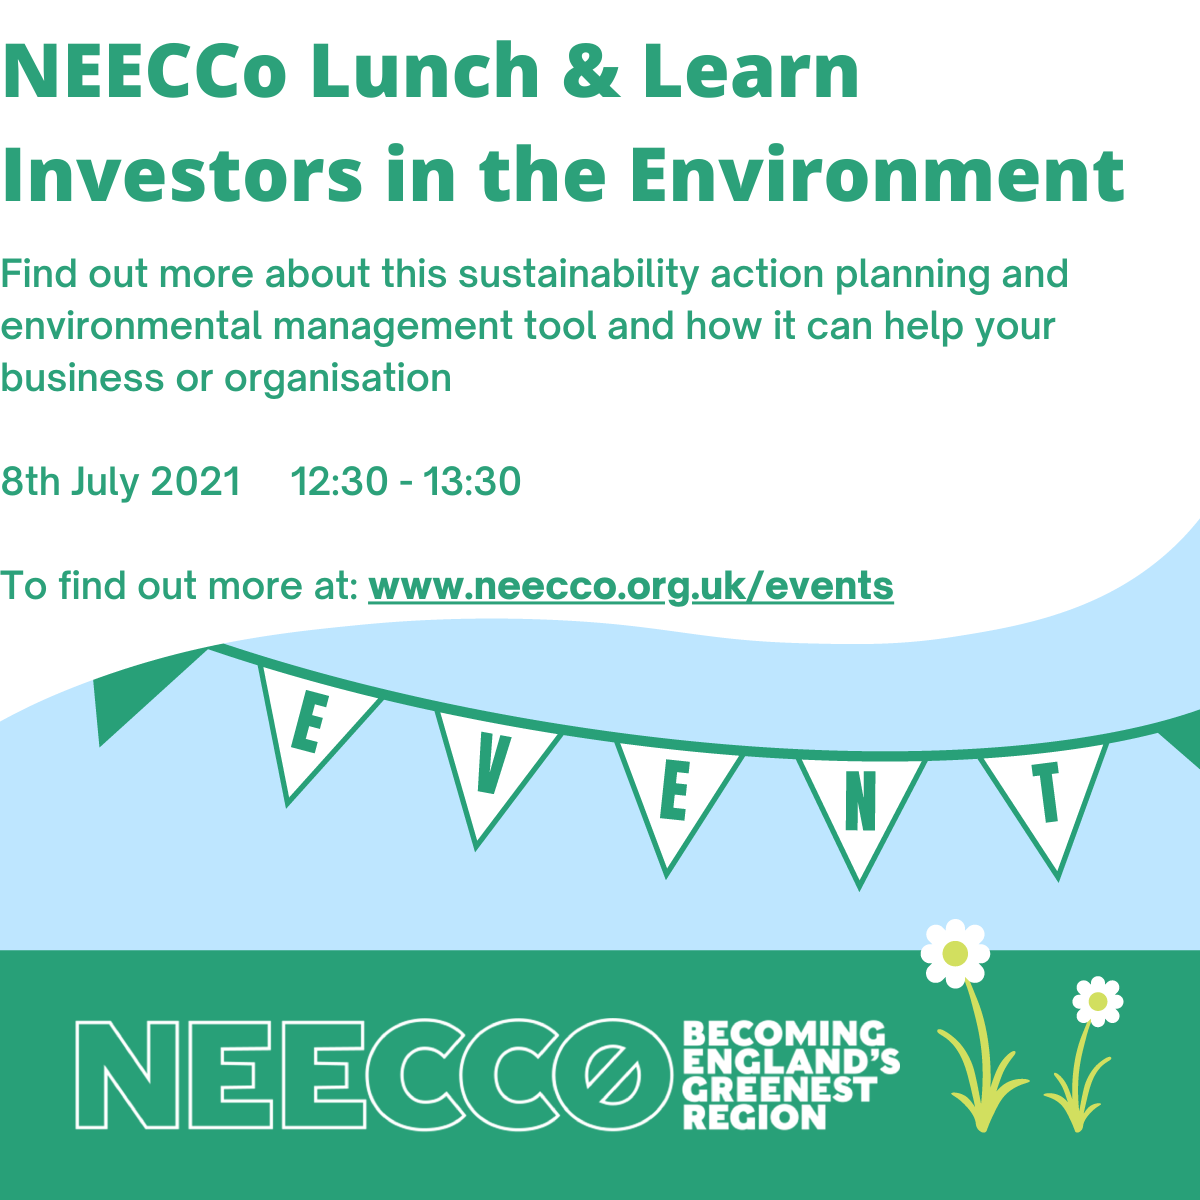 NEECCo Investors in the Environment event 8th July 2021